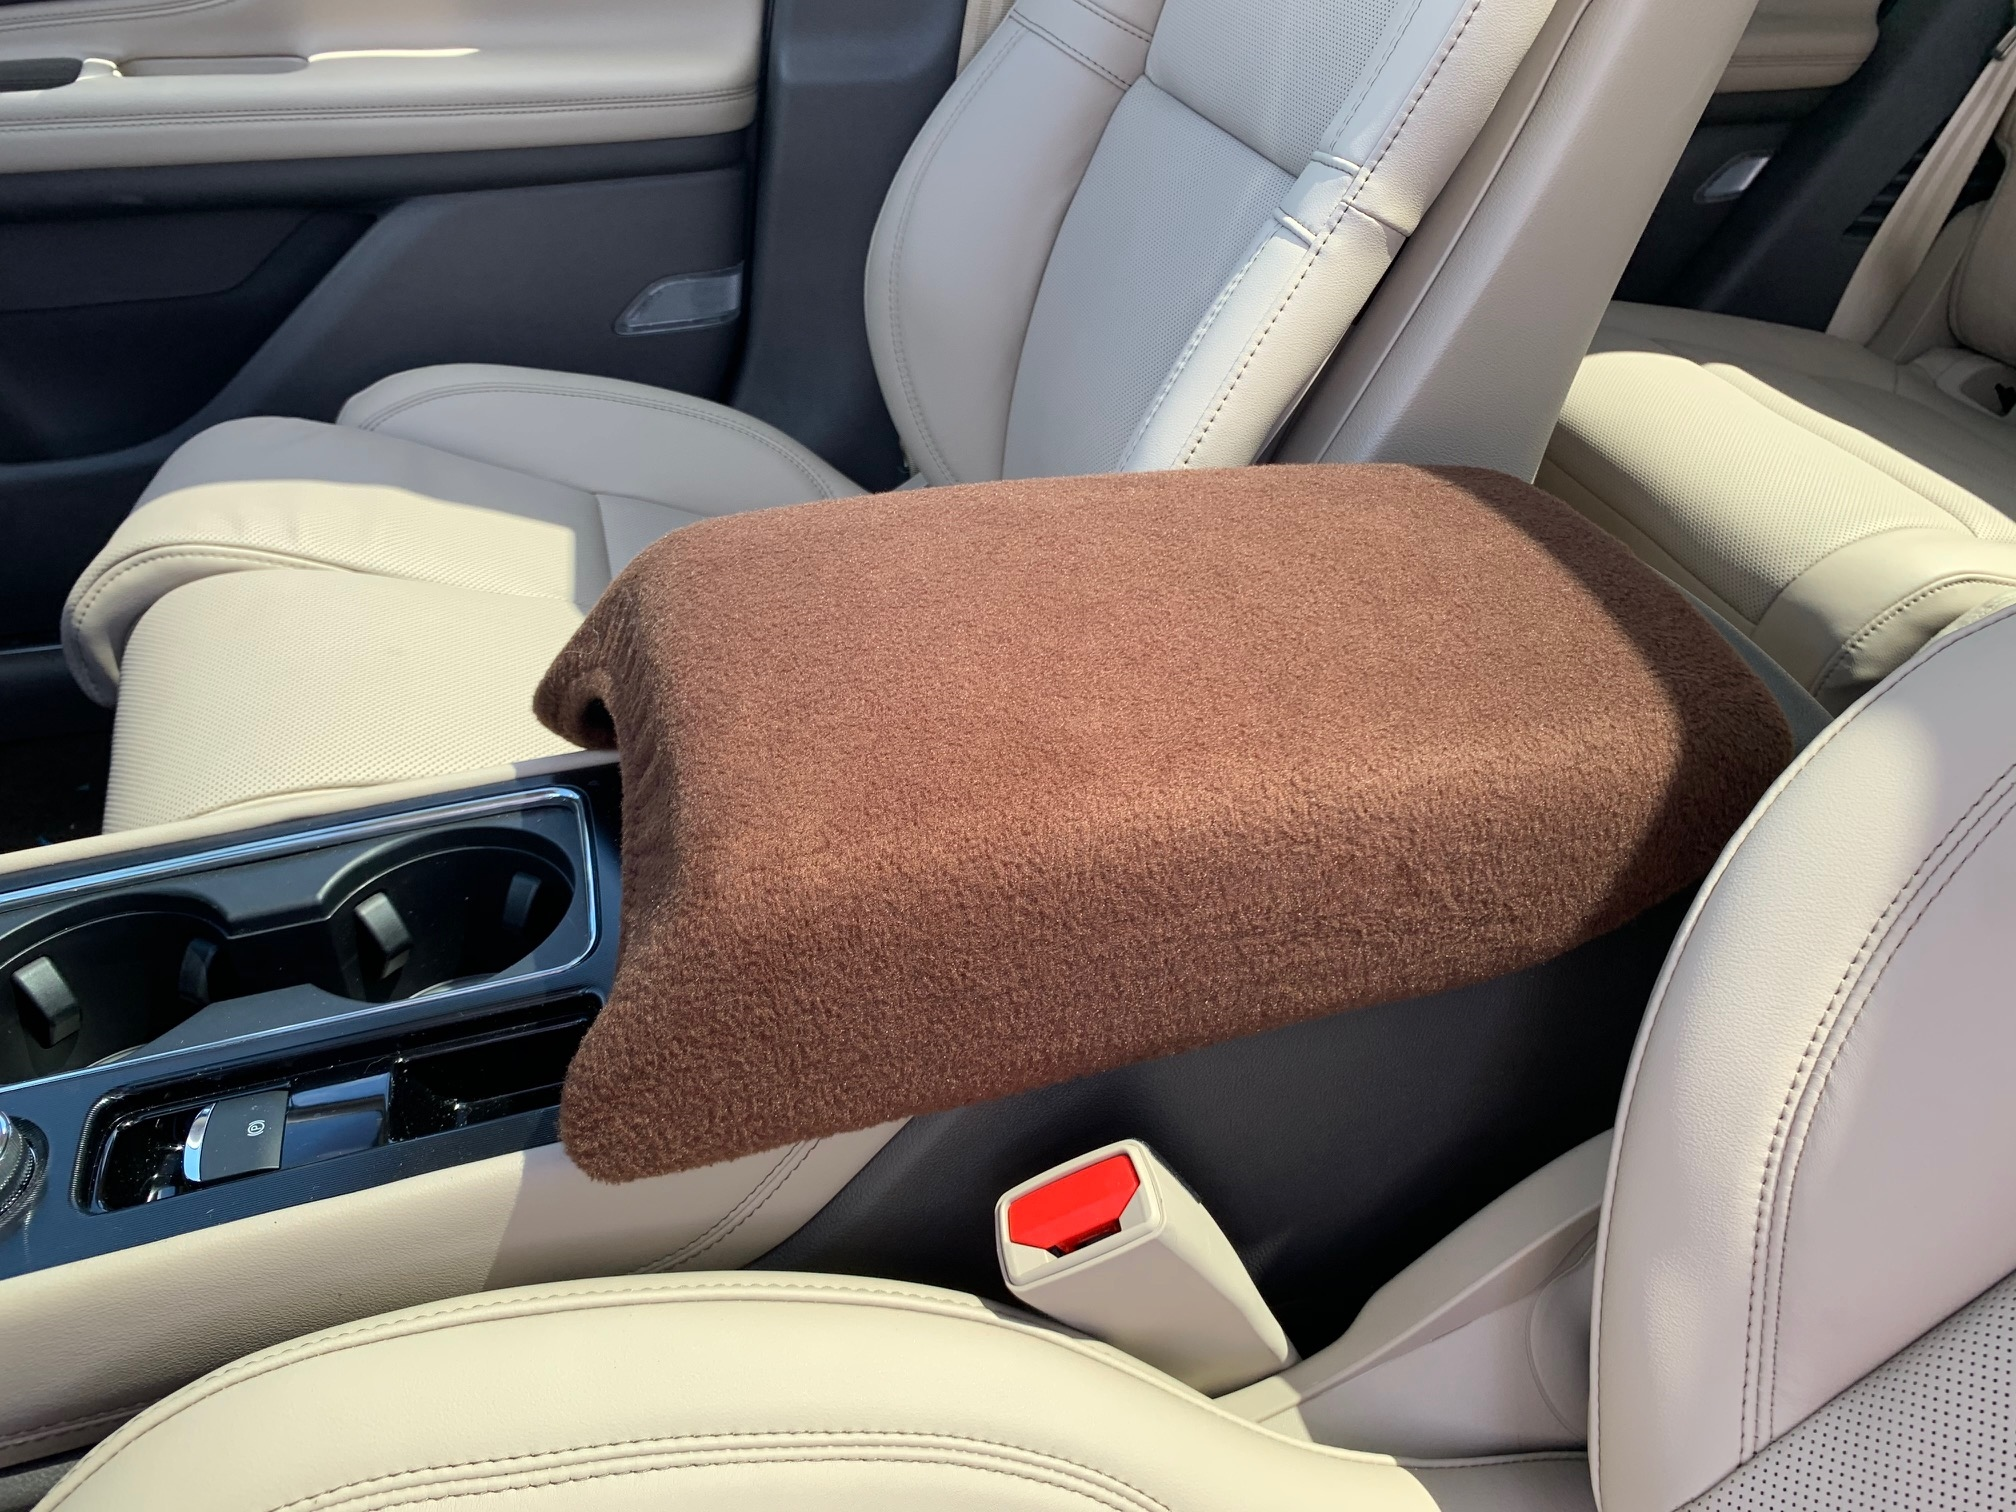 Buy Neoprene Center Console Armrest Cover Fits the Lincoln Corsair 2020-2021